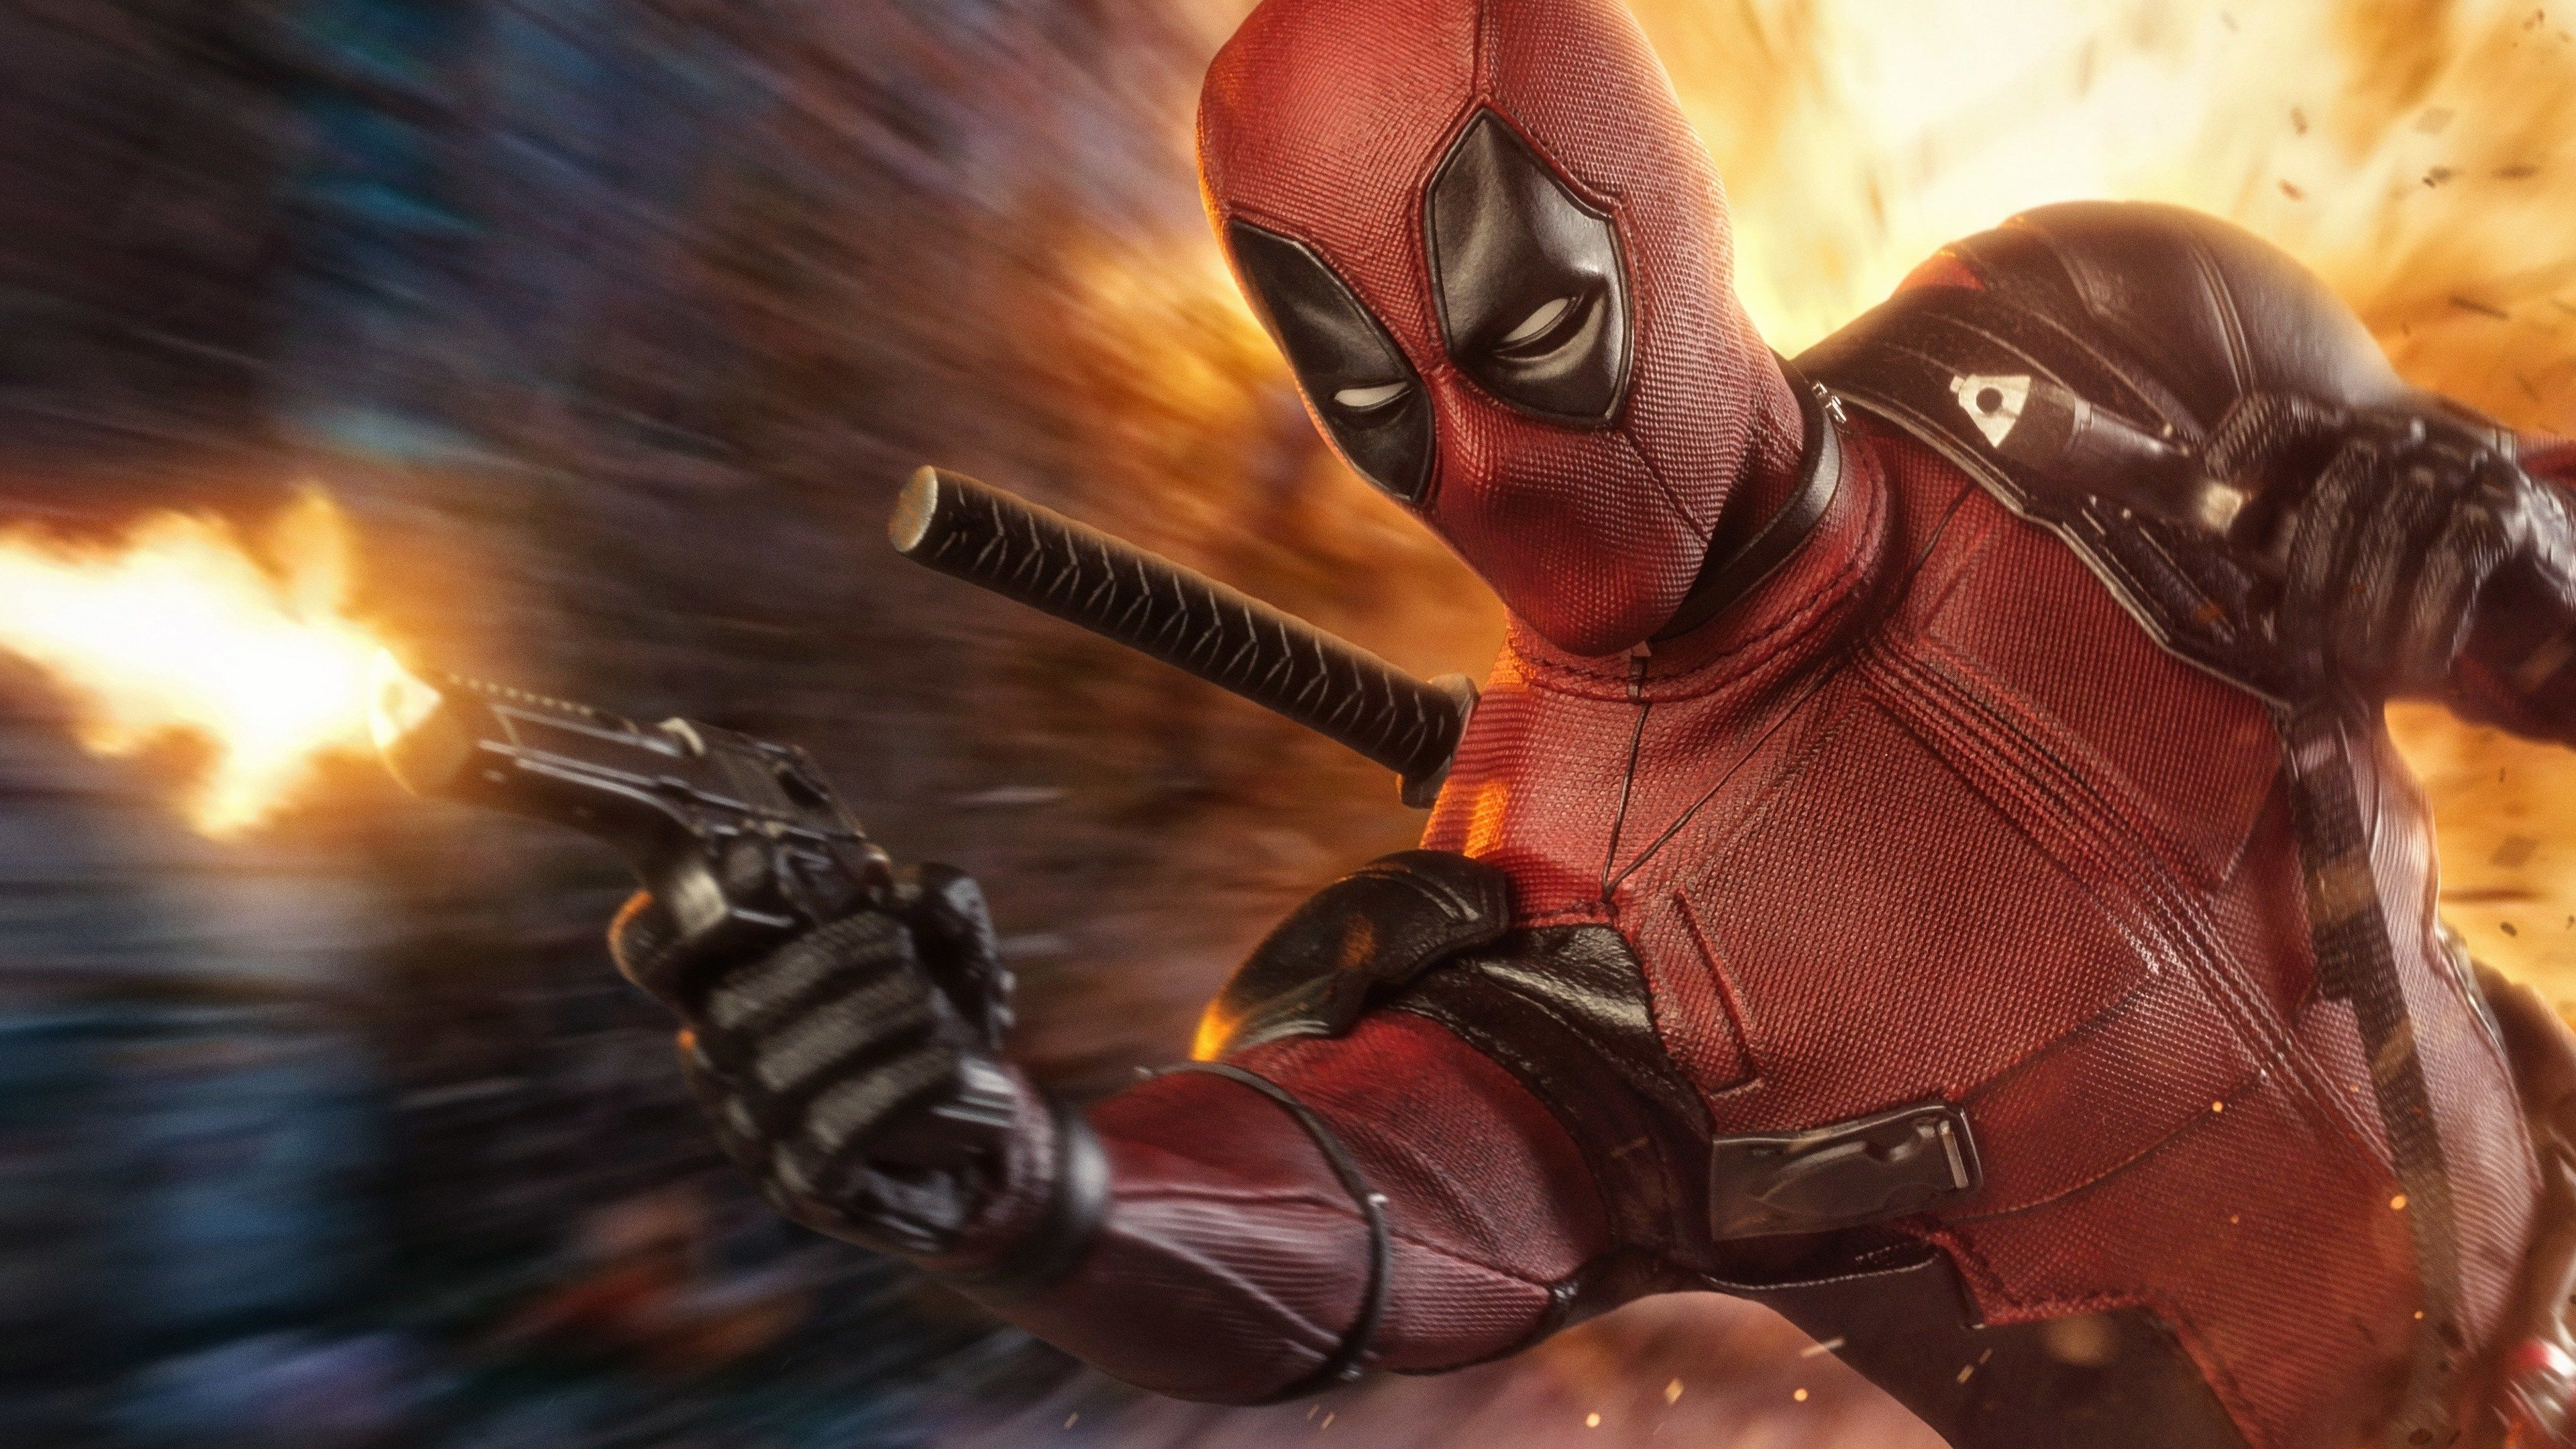 Deadpool 4k Superheroes Wallpapers Hd Wallpapers Deadpool Wallpapers 4k Wallpapers Deadpool Wallpaper Superhero Deadpool